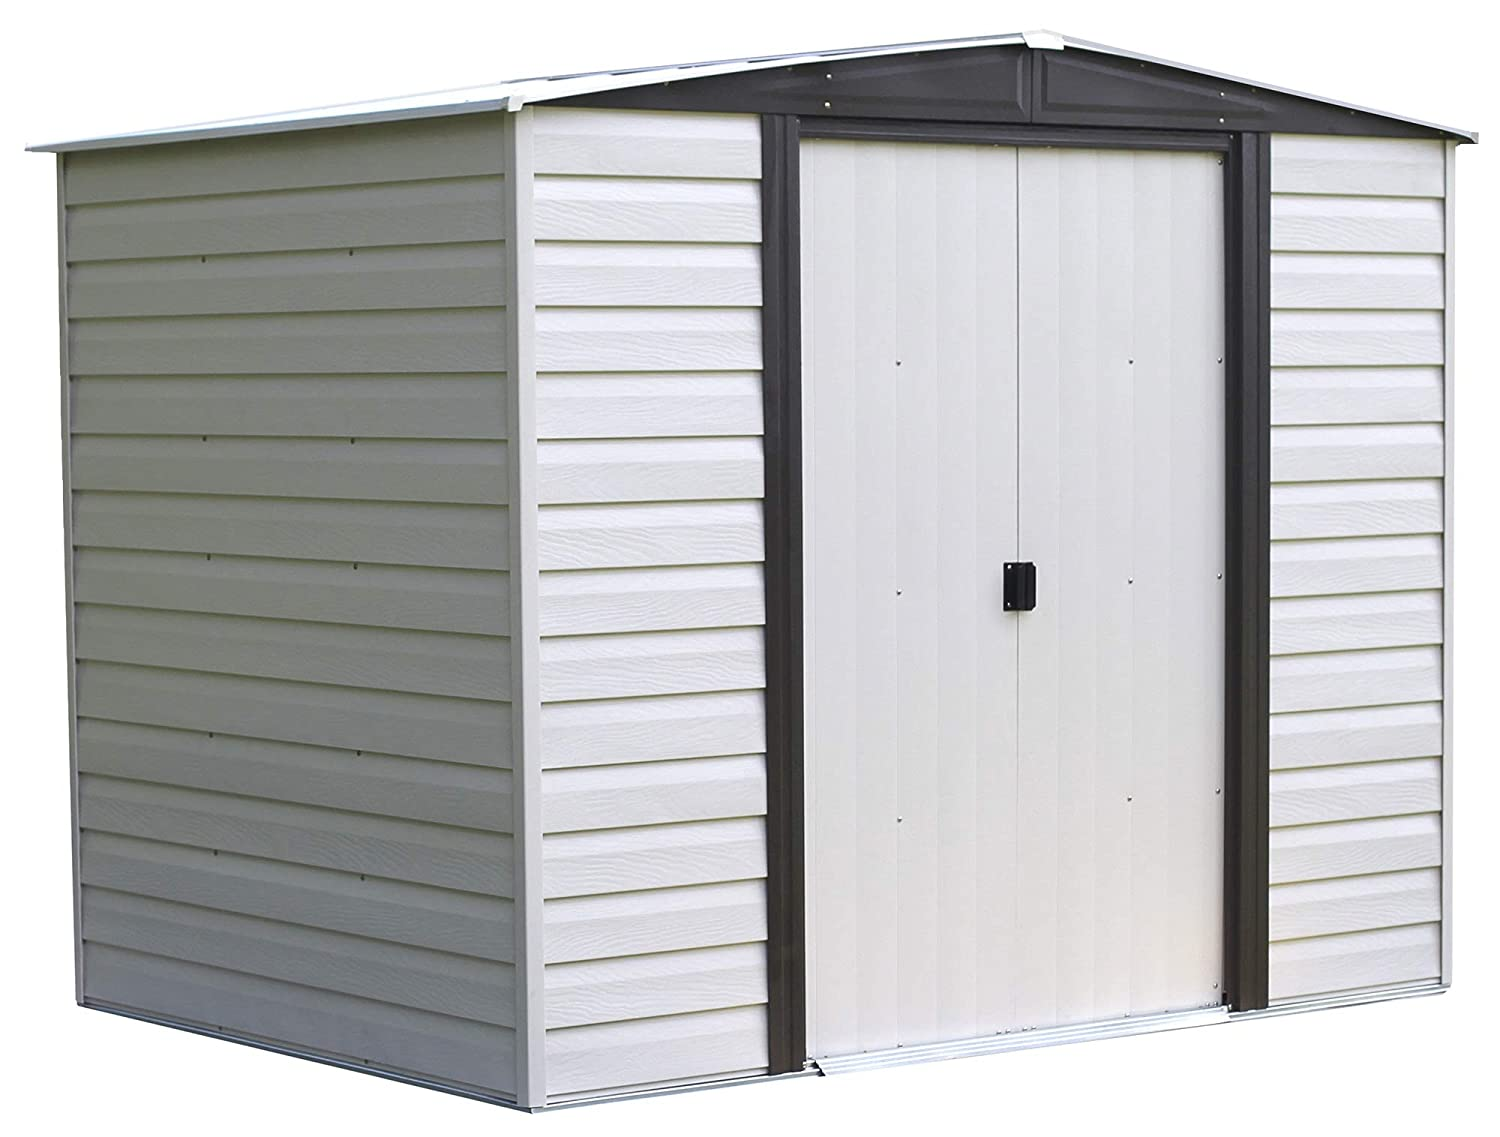 Amazon com arrow vd86 vinyl coated dallas 8 feet by 6 feet steel storage shed outdoor shed garden outdoor